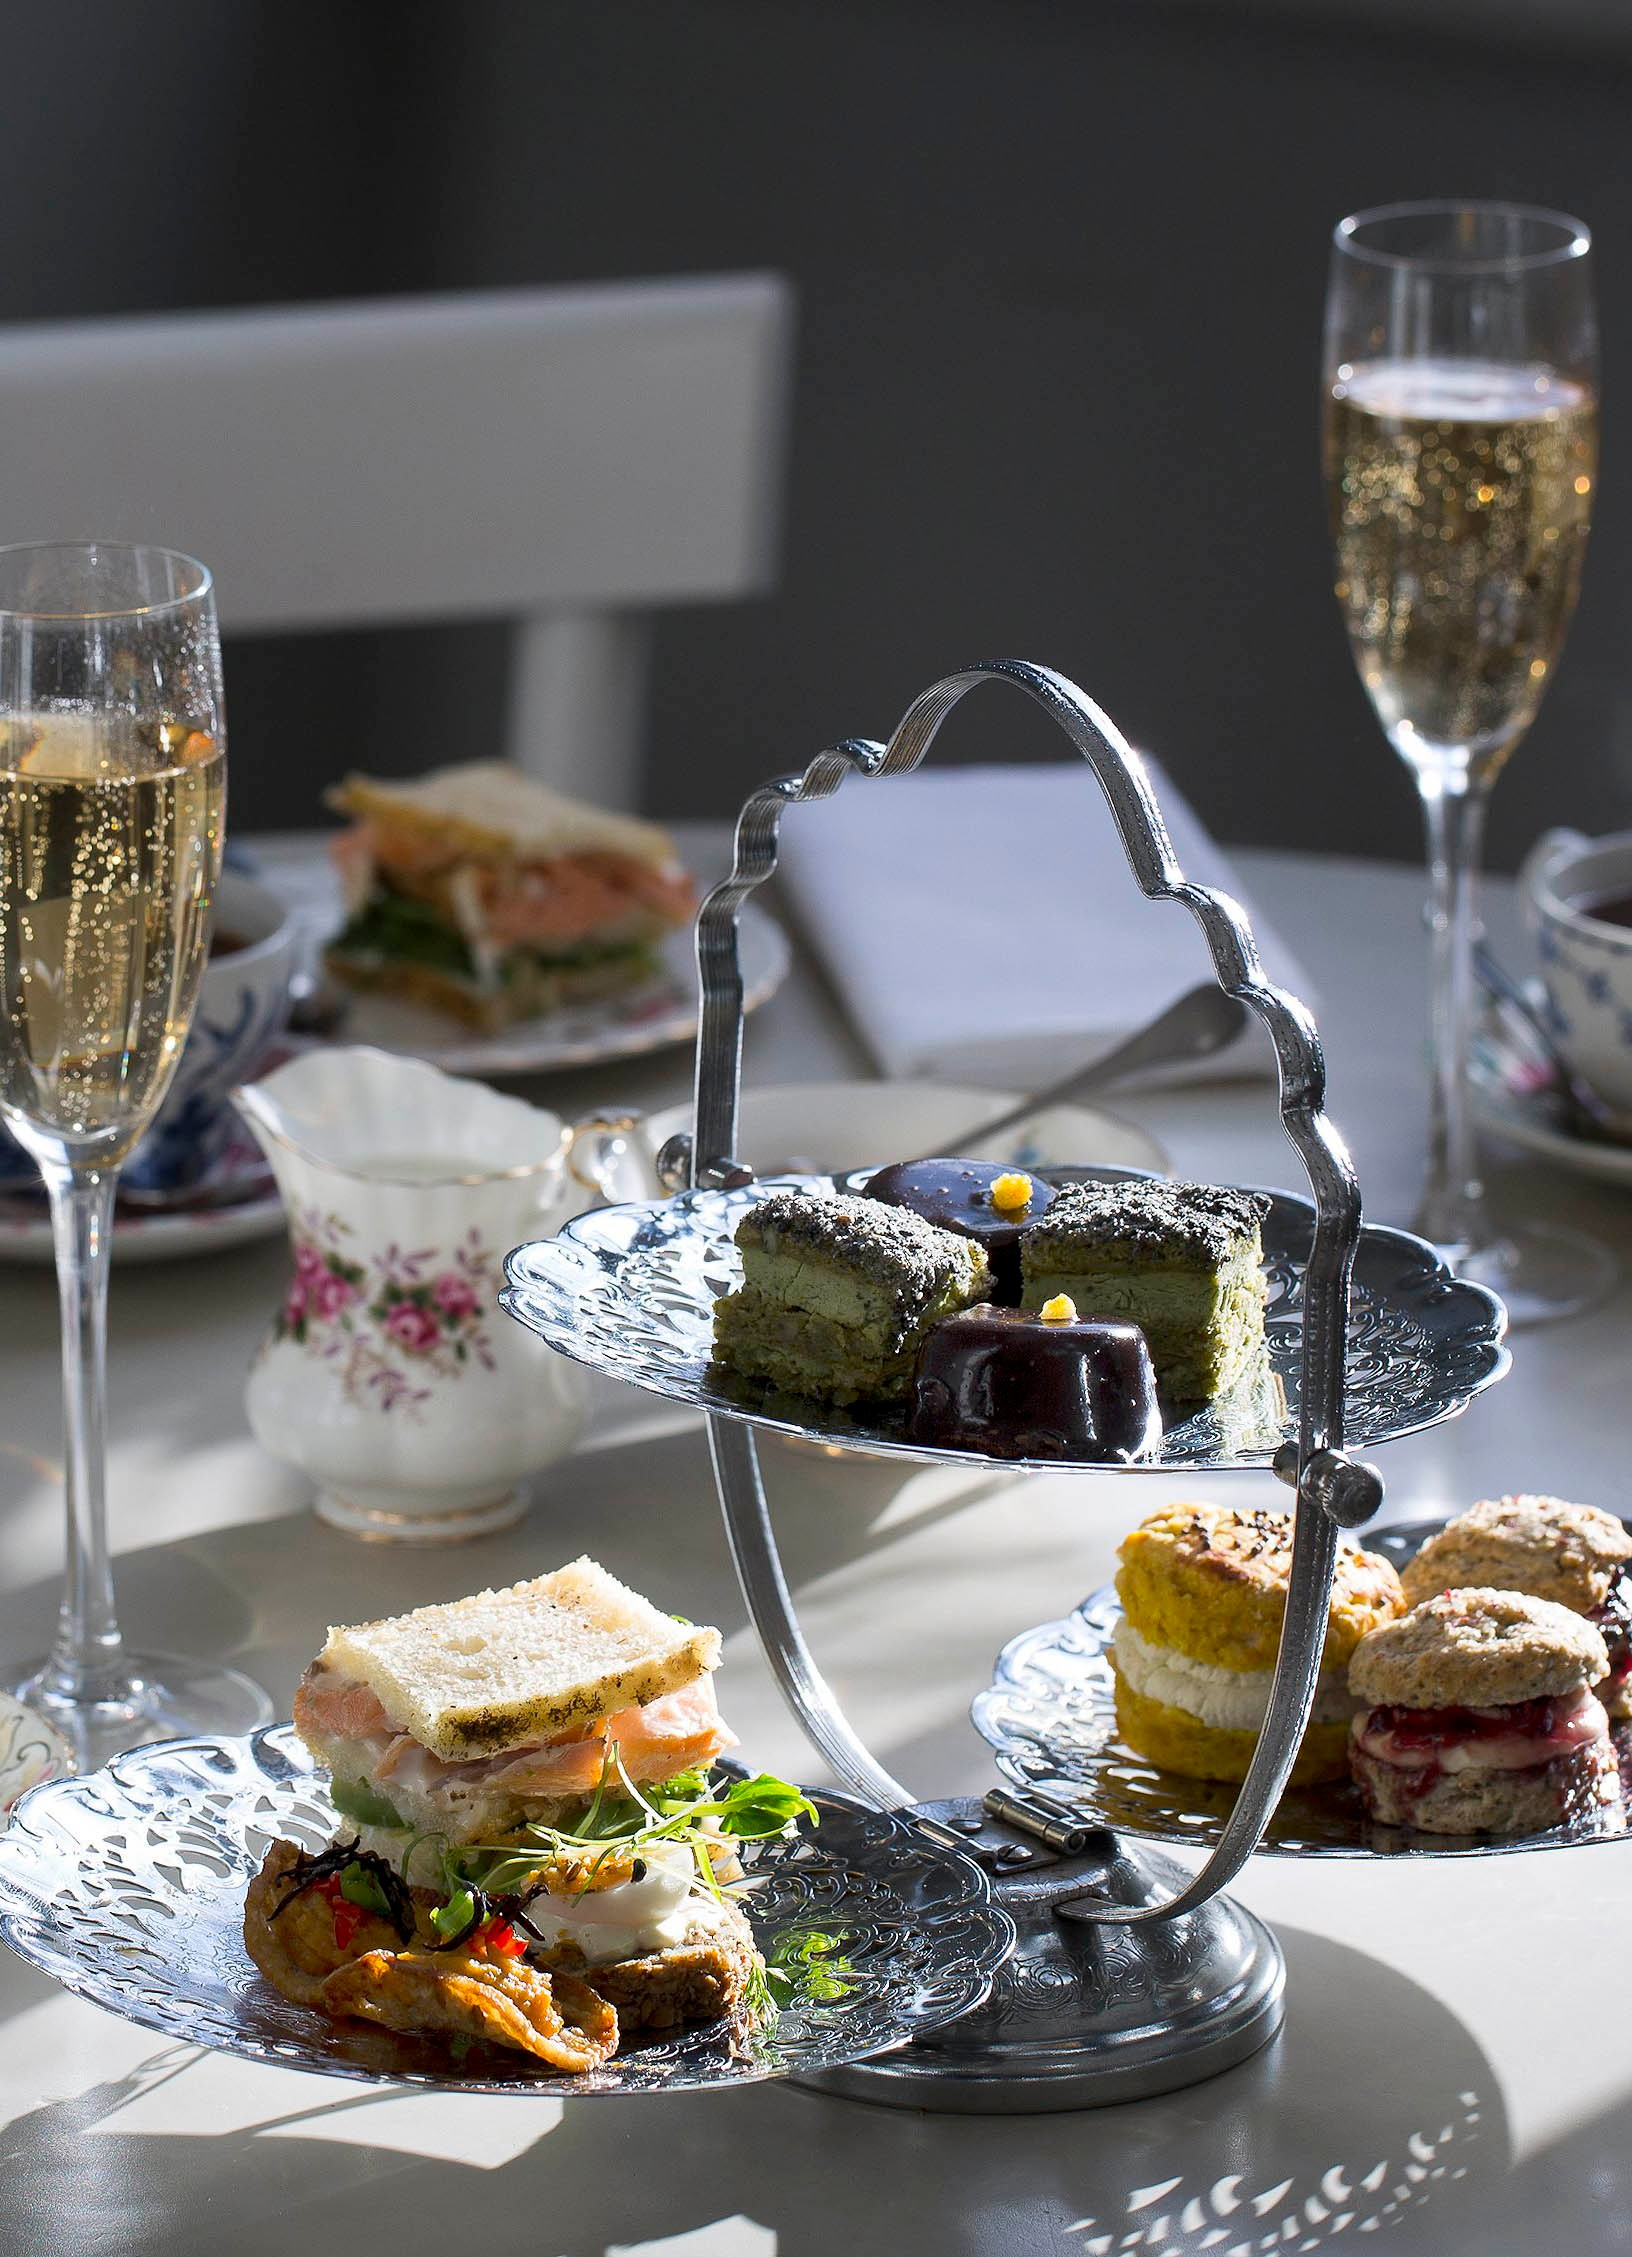 The Modern Pantry, London EC1: Afternoon Tea Review